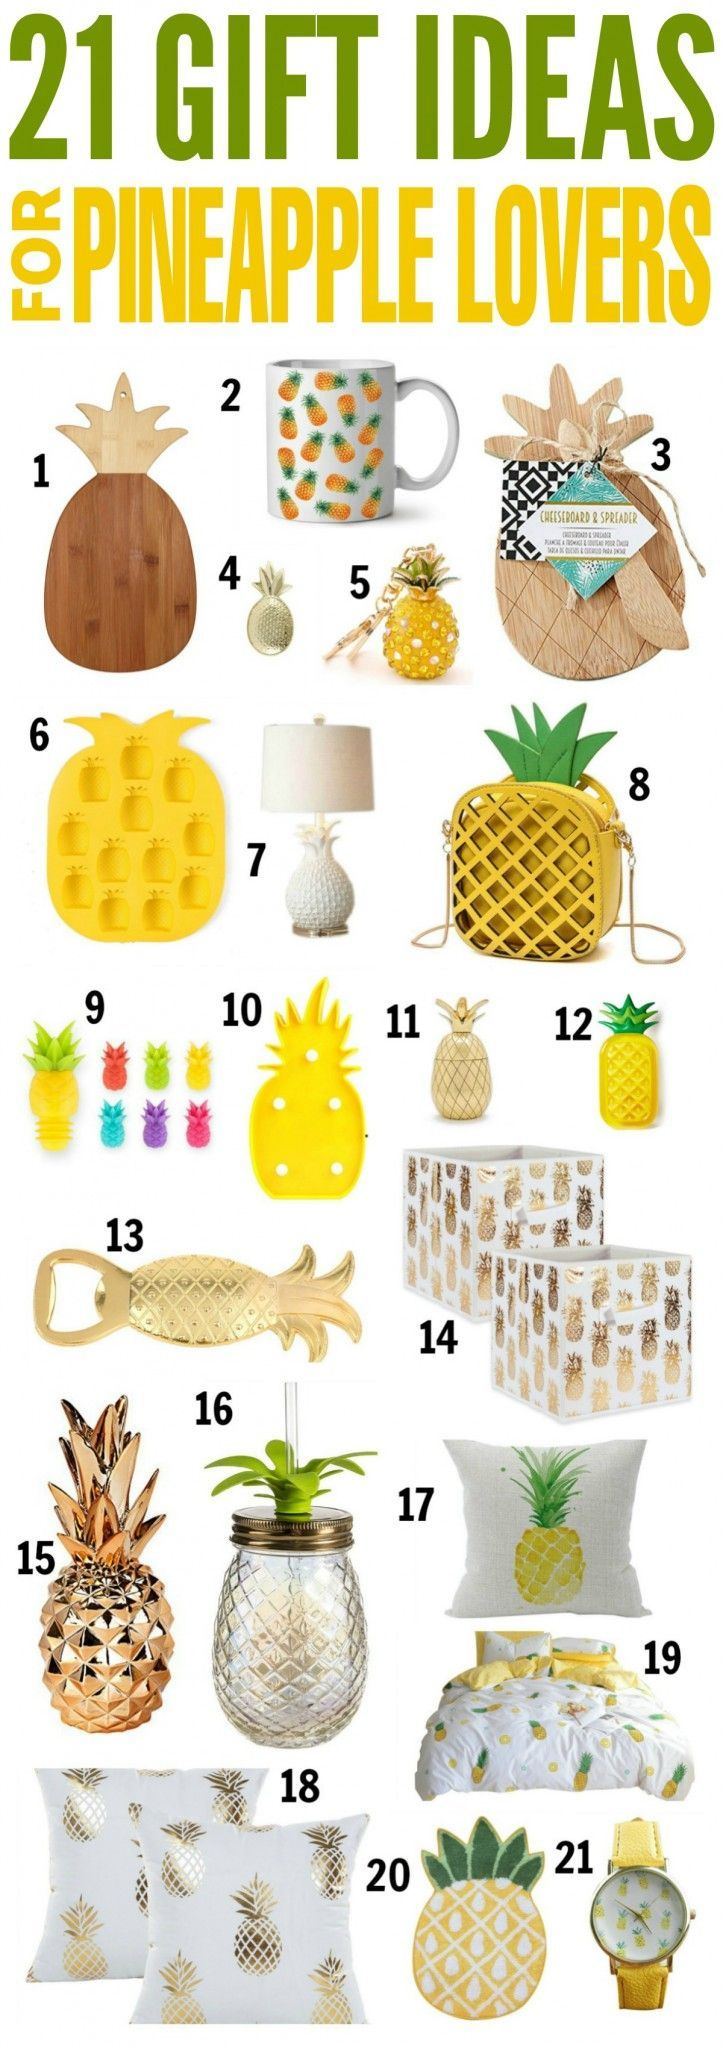 32 Gift Ideas for Pineapple Lovers   Pineapple gifts, Pineapple ...